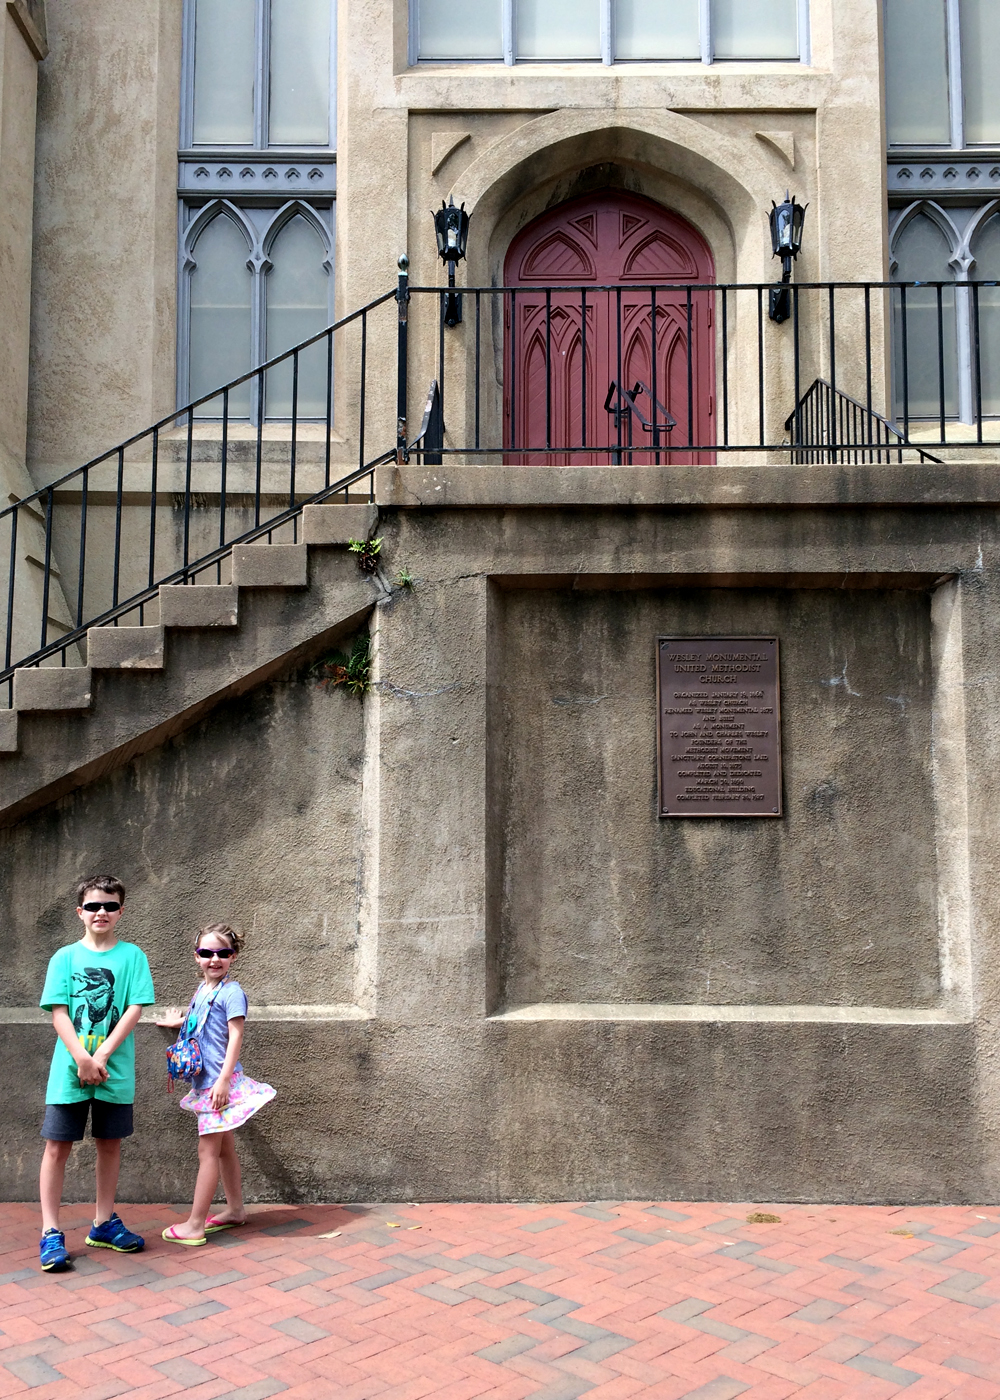 Showing our 7 and 9 year old the church where my husband and I married in almost 12 years ago in Savannah, GA